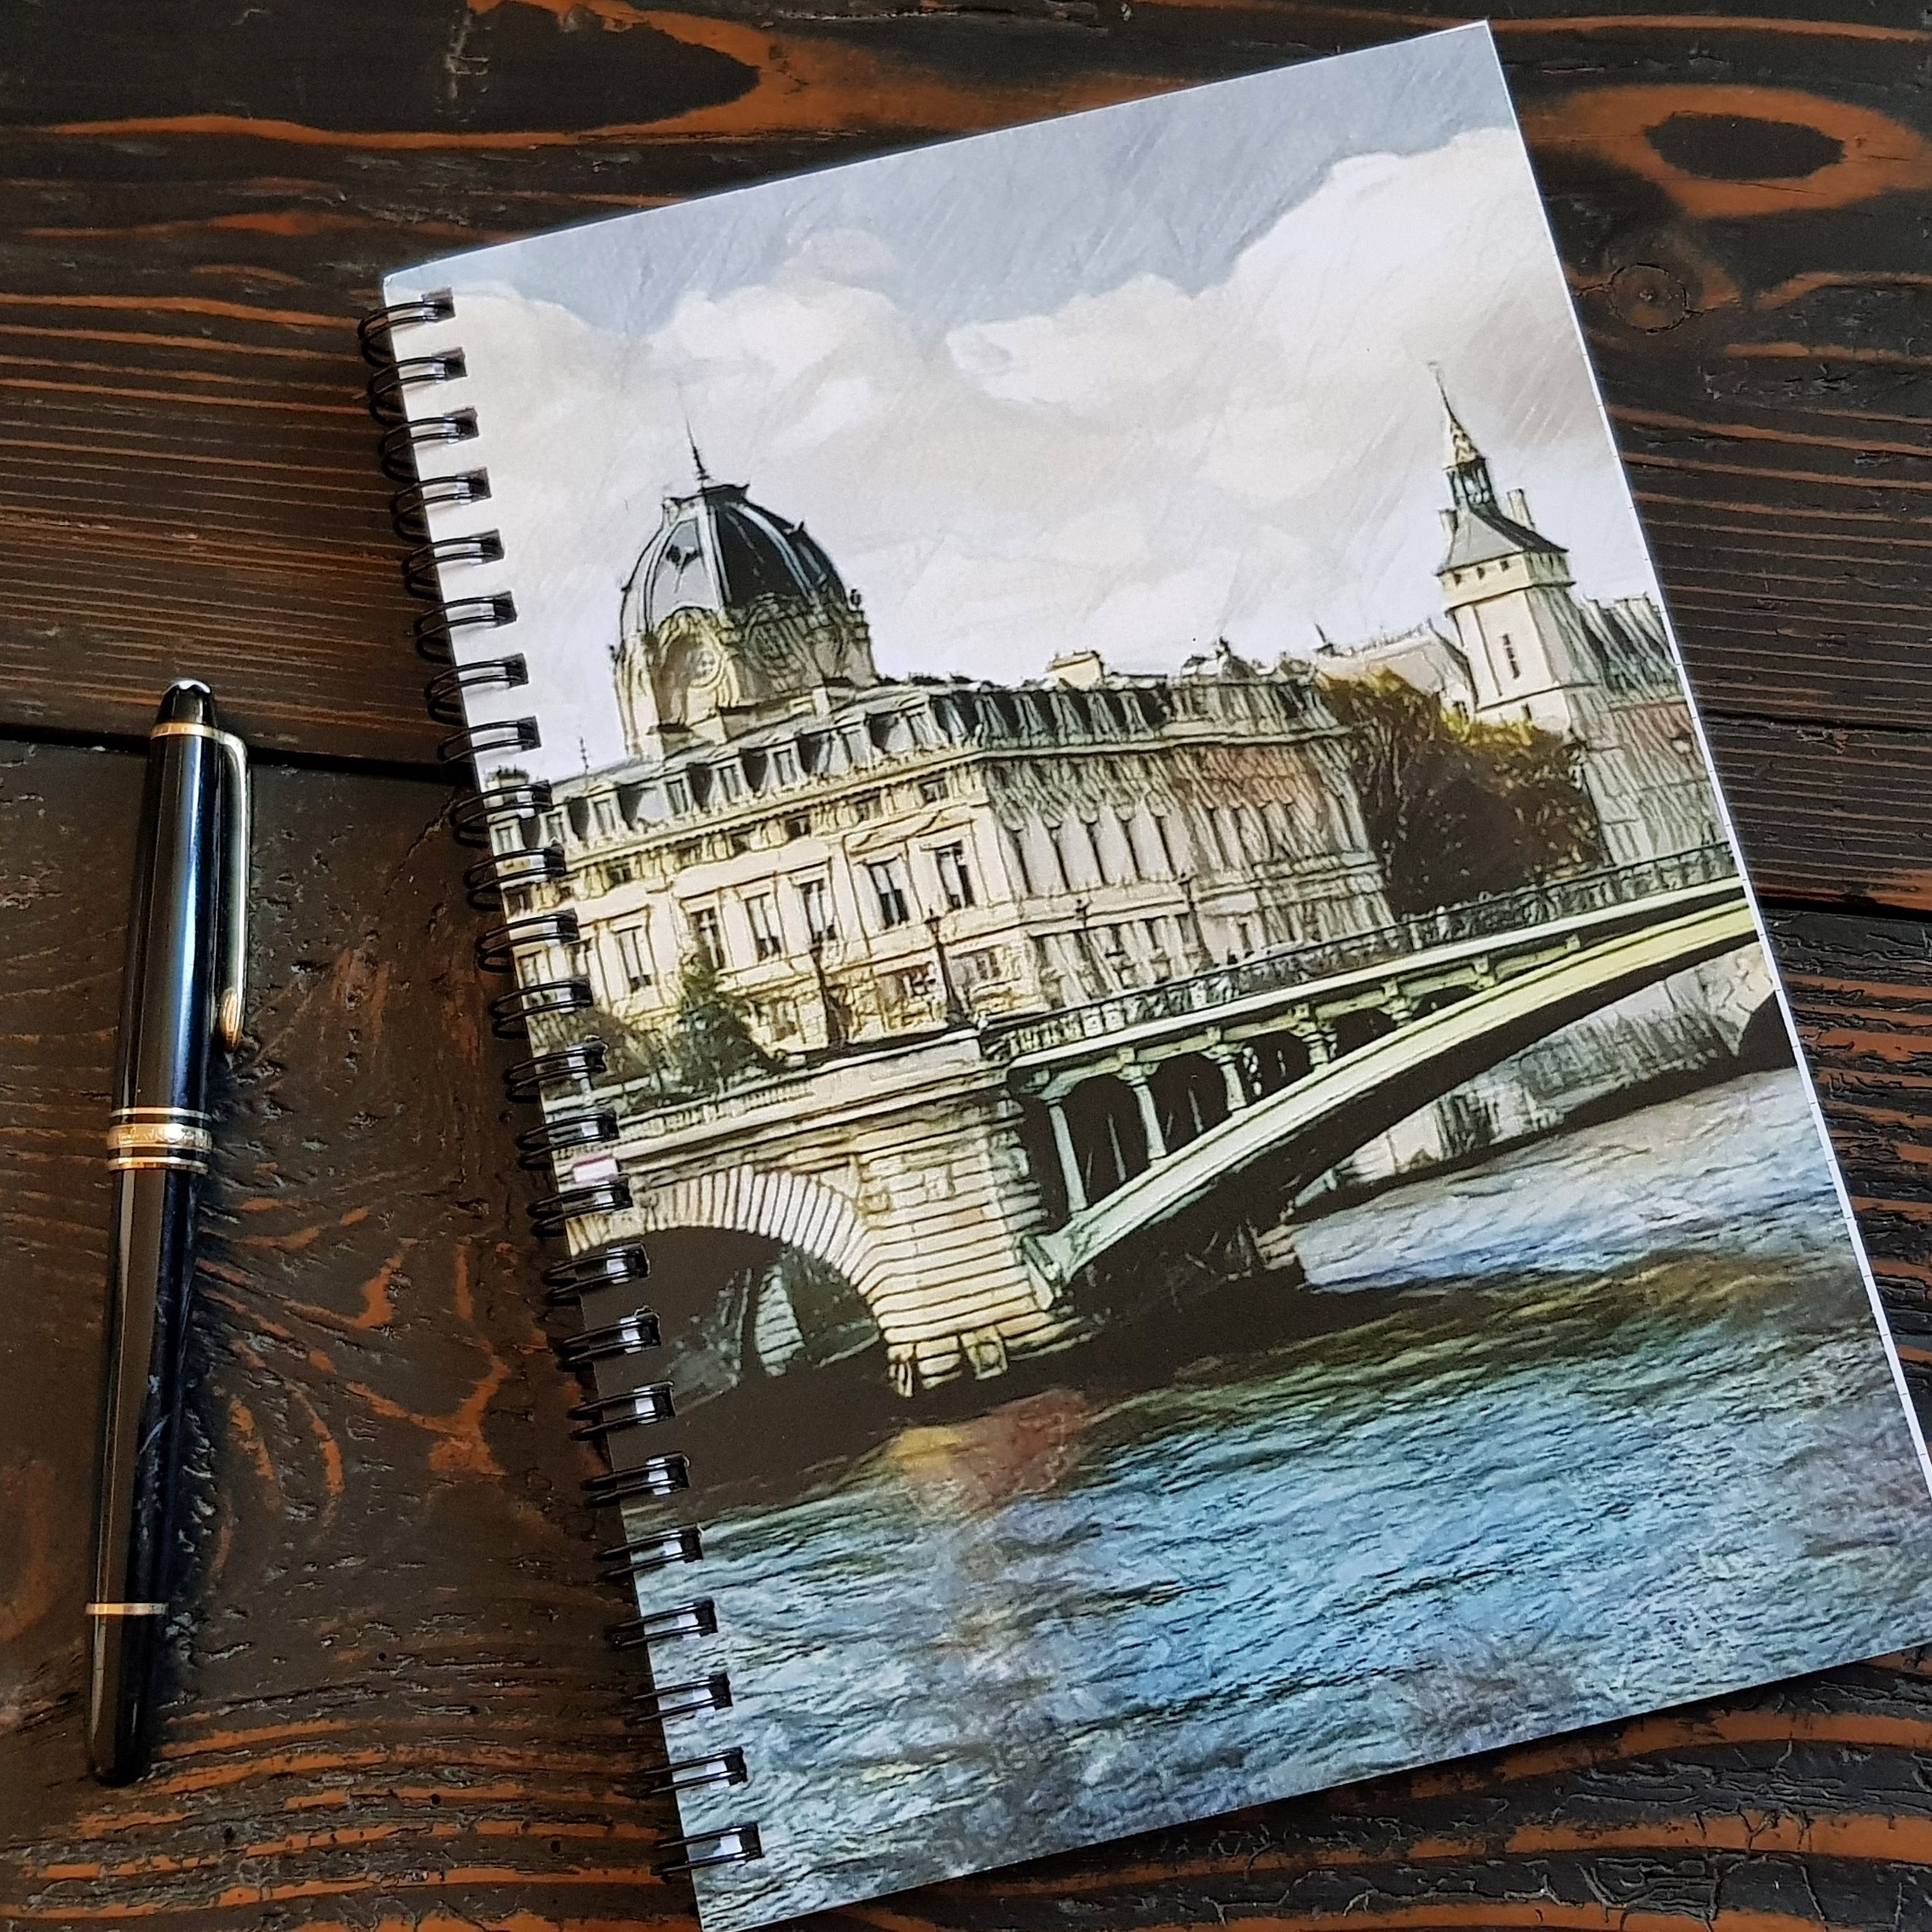 Paris on Mind by Bellanda - notebook